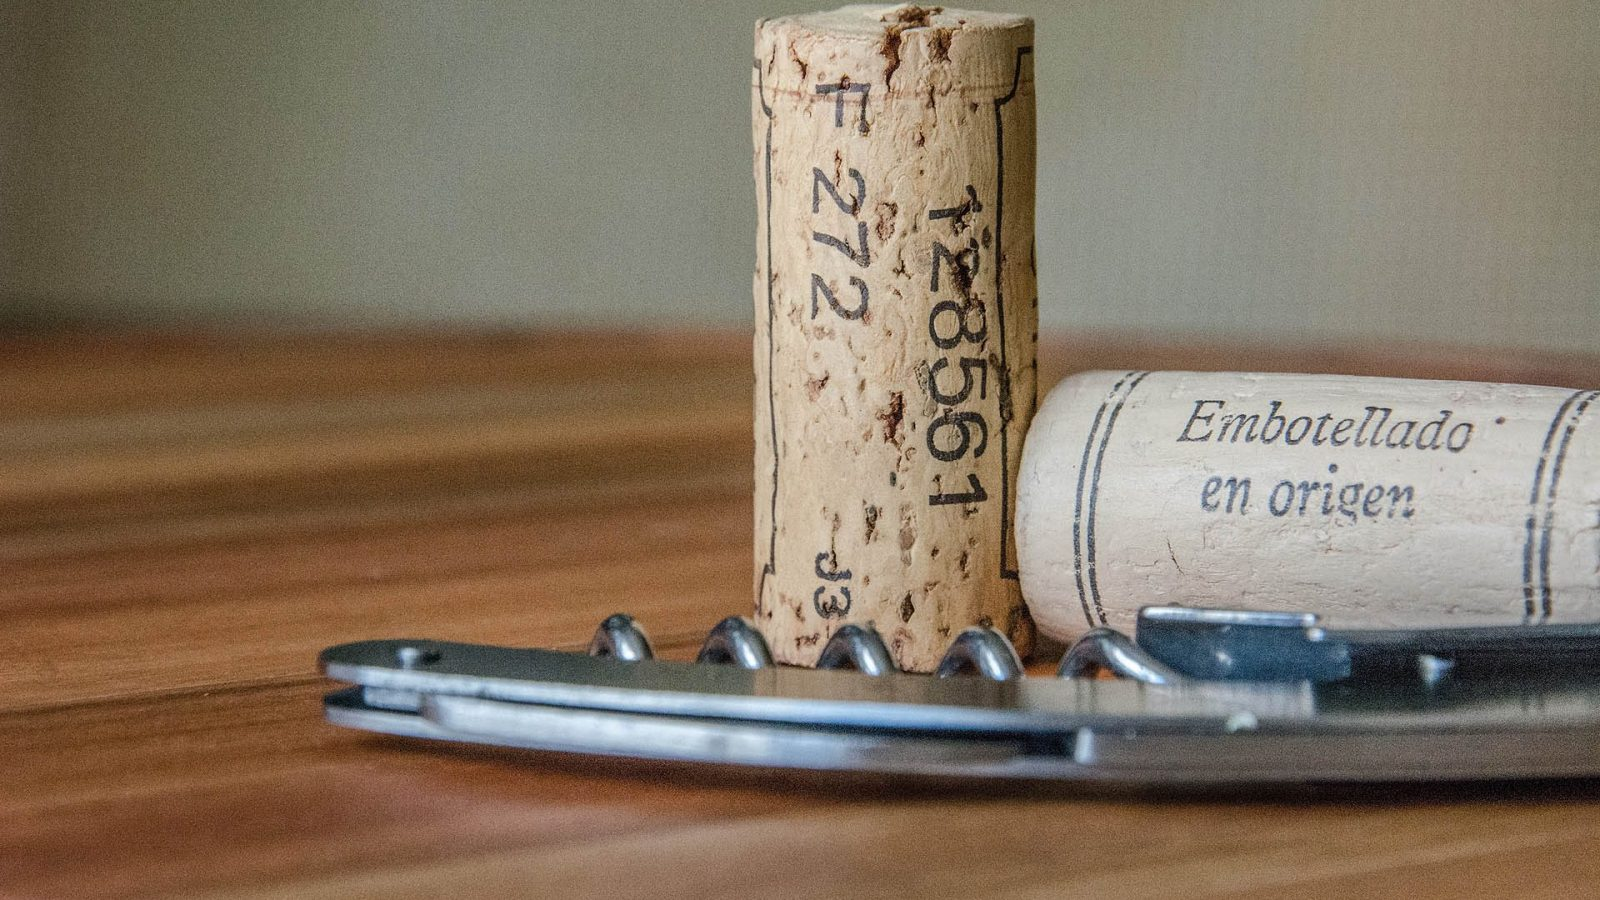 Cork and Corkscrew